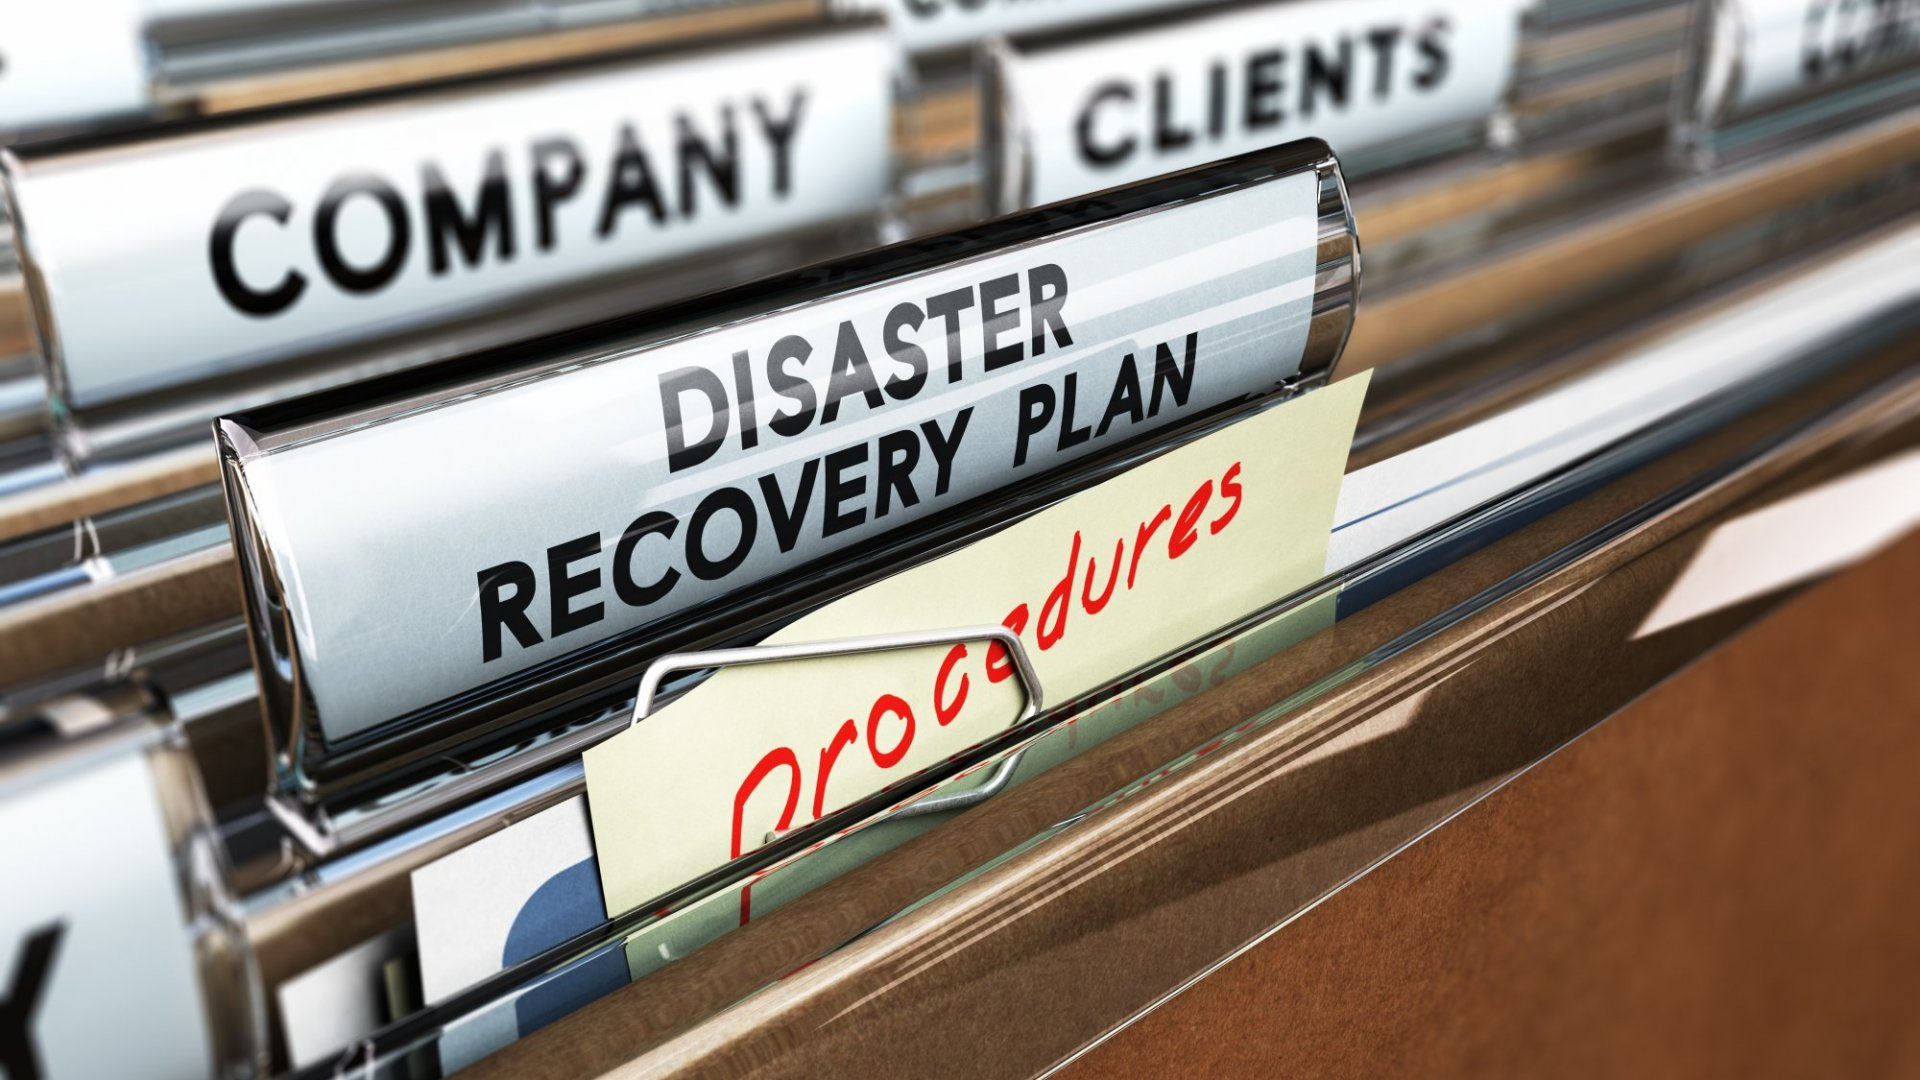 10 Things Great Leaders Do to Handle a Disaster